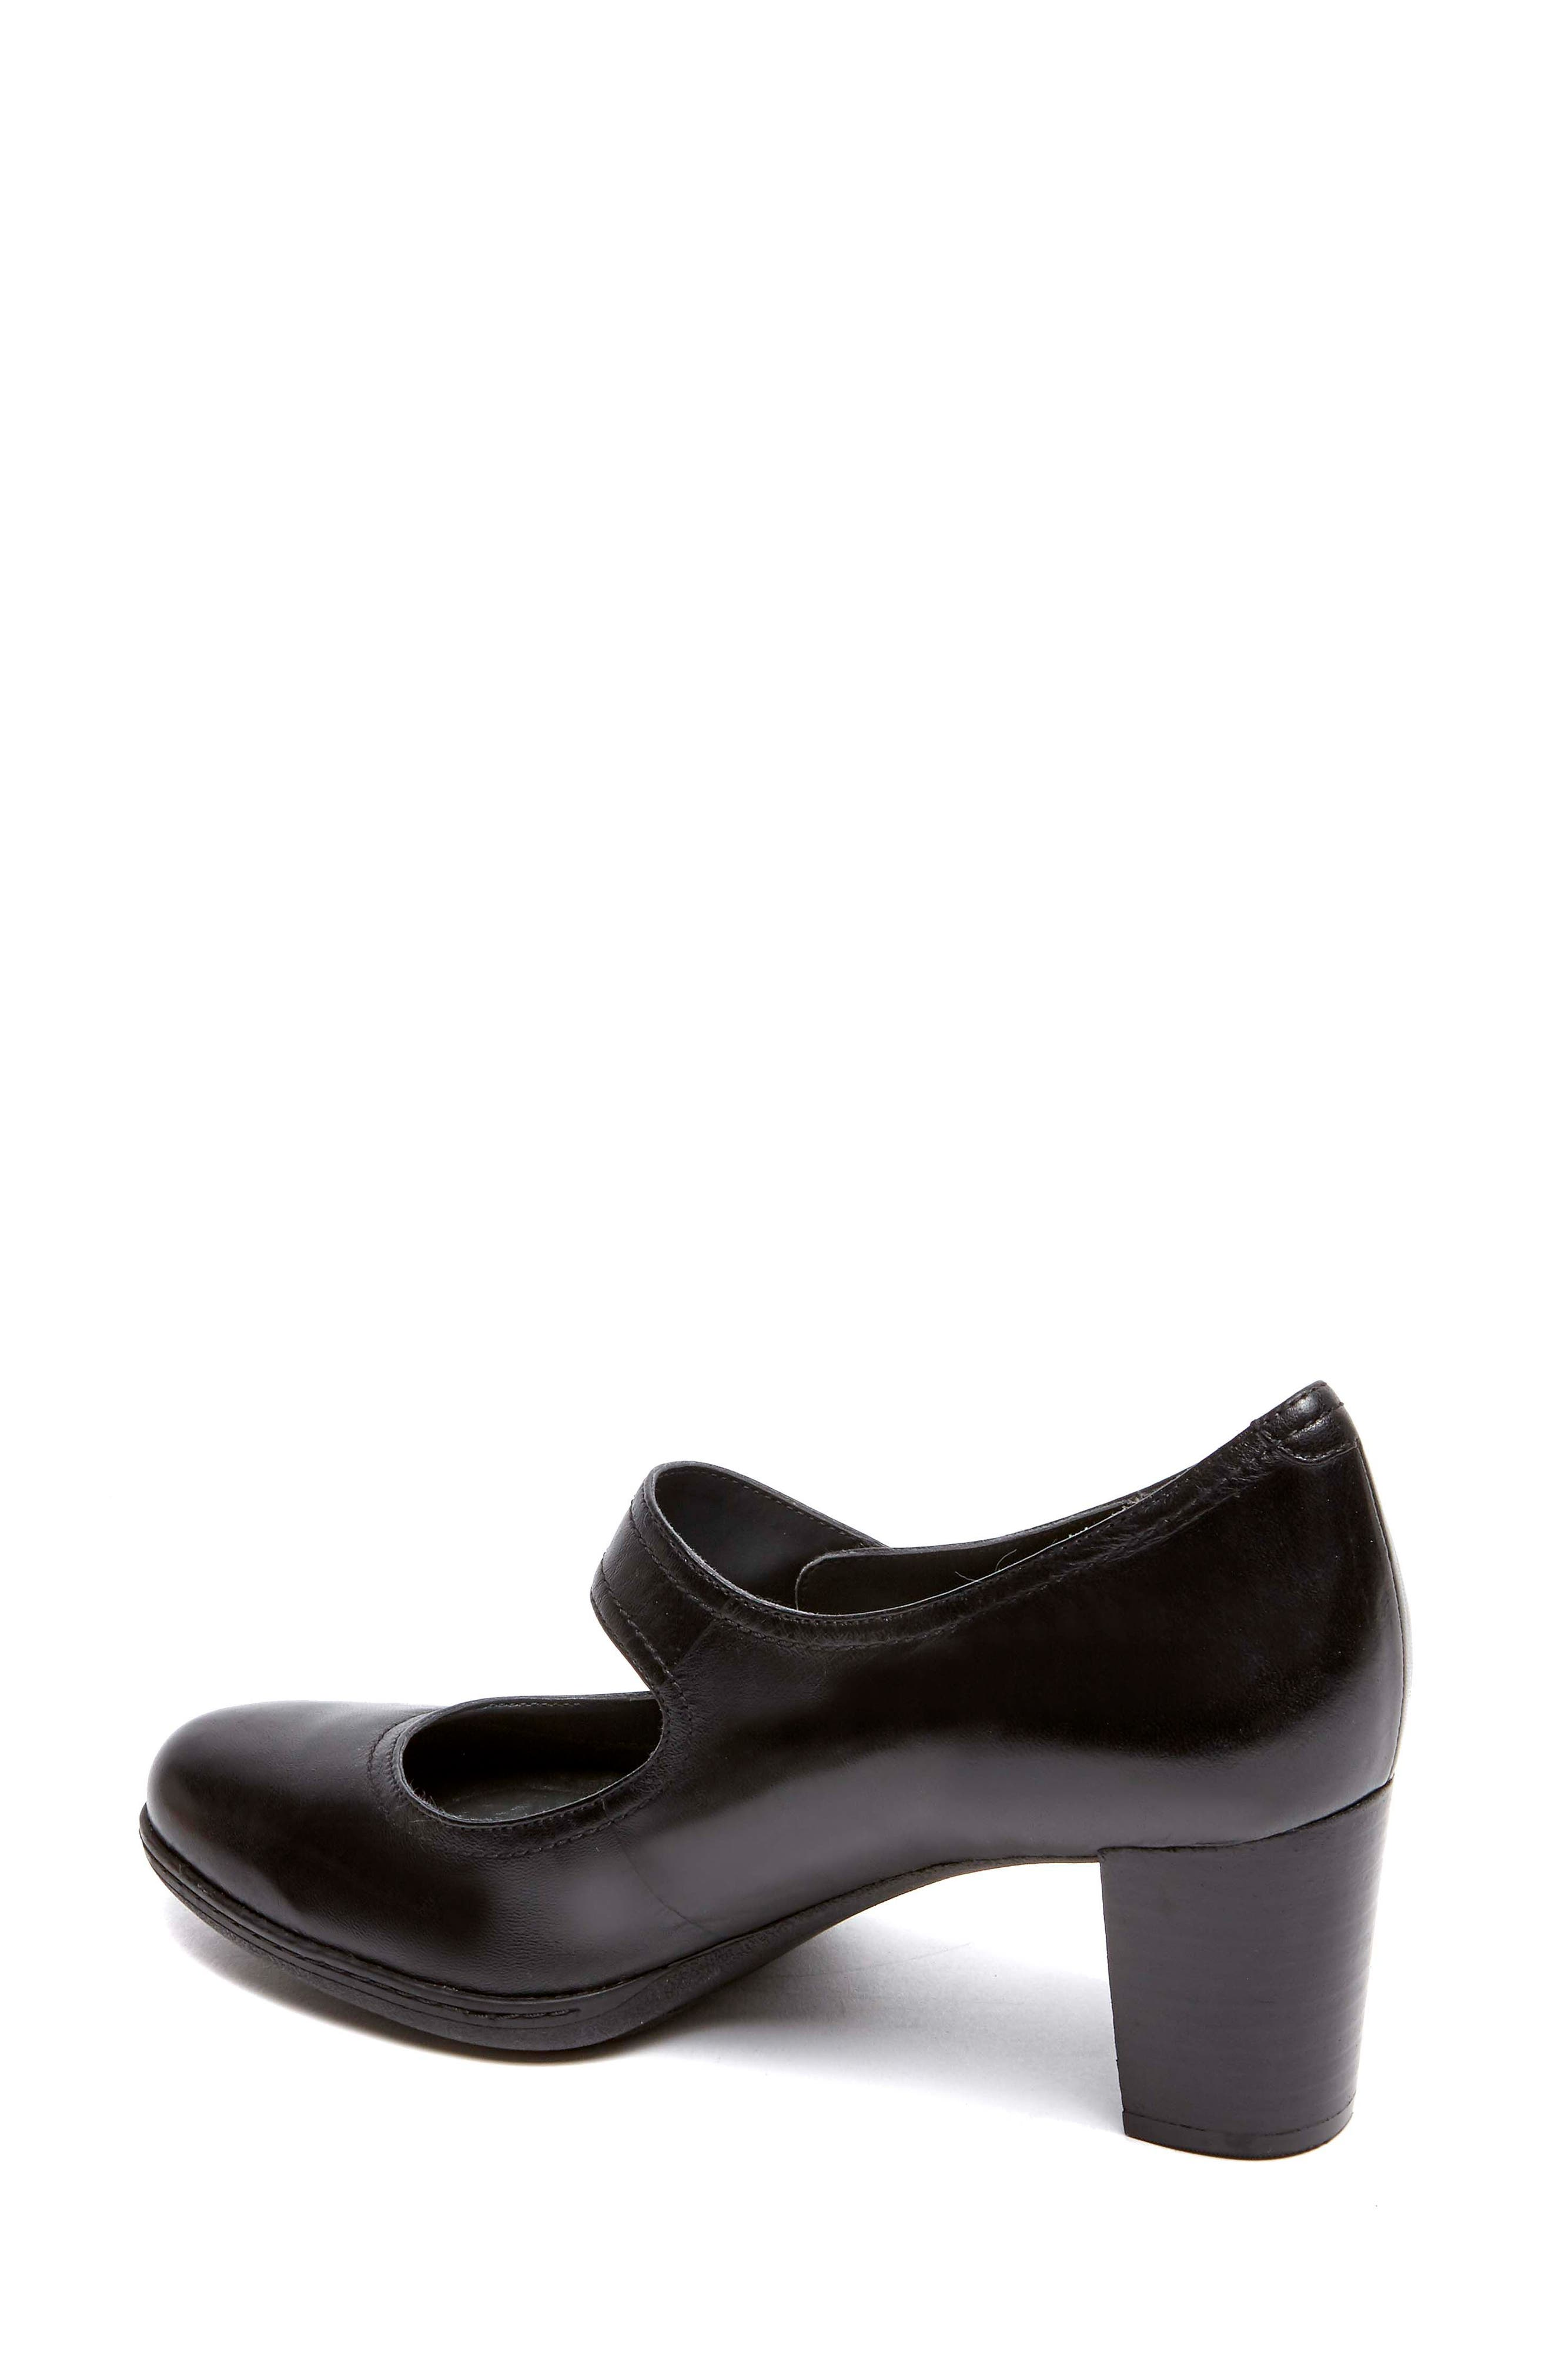 Alternate Image 2  - Rockport Chaya Mary Jane Pump (Women)